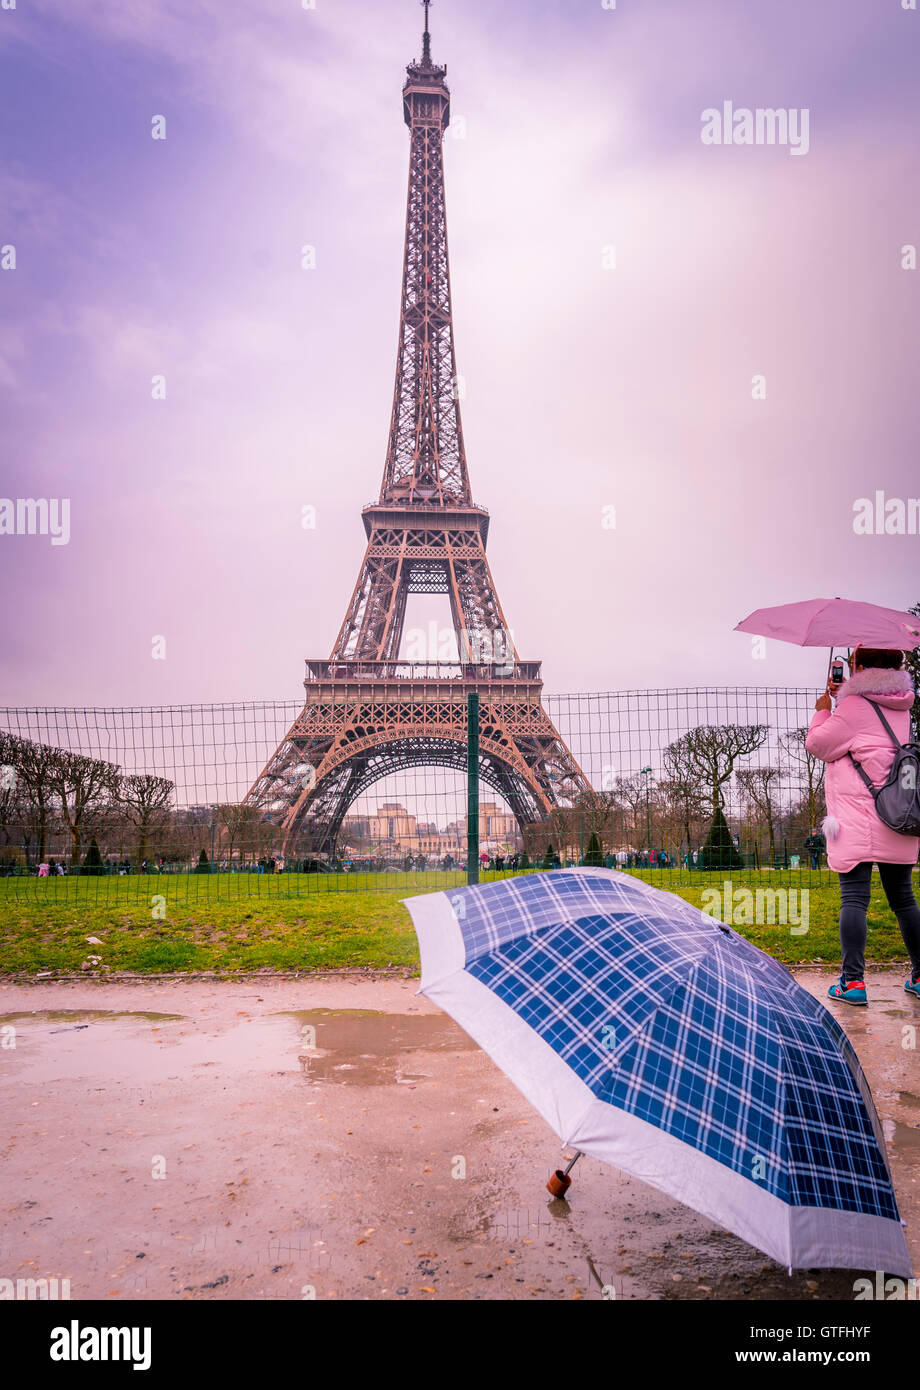 Regentag in Paris am Eiffelturm Stockbild